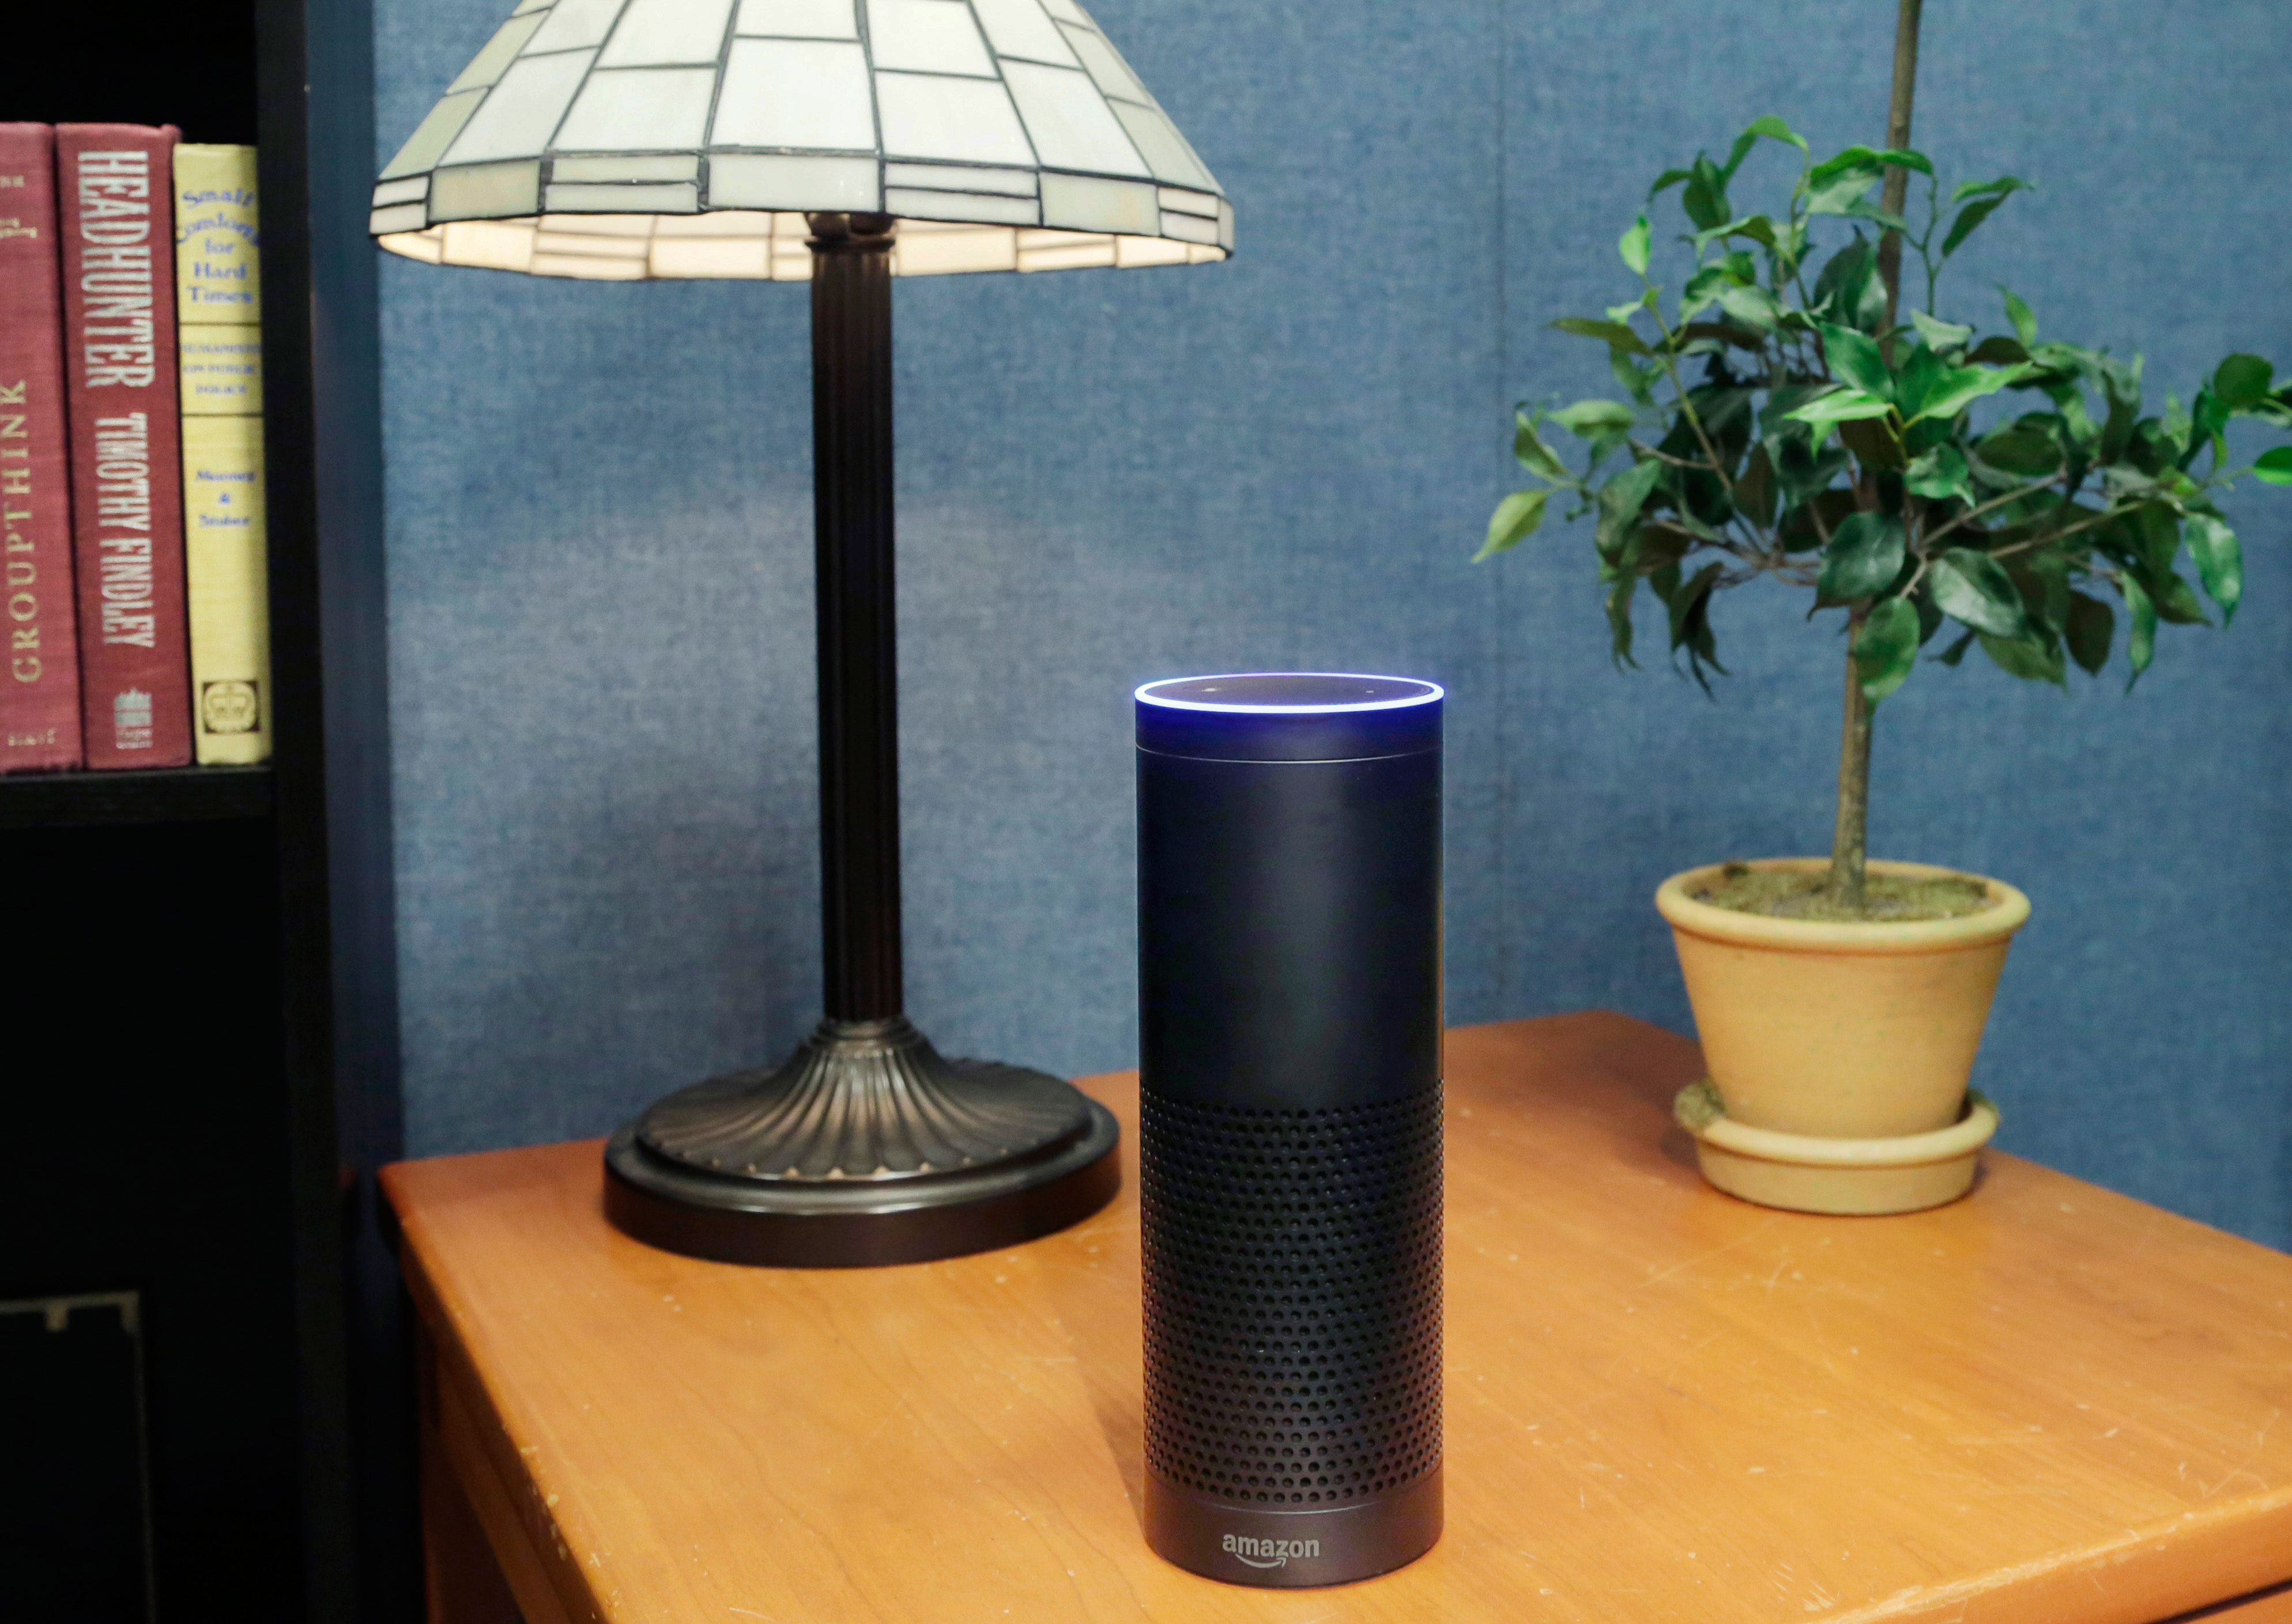 """FILE - This July 29, 2015 file photo made in New York shows Amazon's Echo, a digital assistant that continually listens for commands such as for a song, a sports score or the weather. The company says Echo transmits nothing to Amazon's data centers until you first say """"Alexa"""" or press a button. A blue light also comes on to let you know it's active. (AP Photo/Mark Lennihan, File)"""